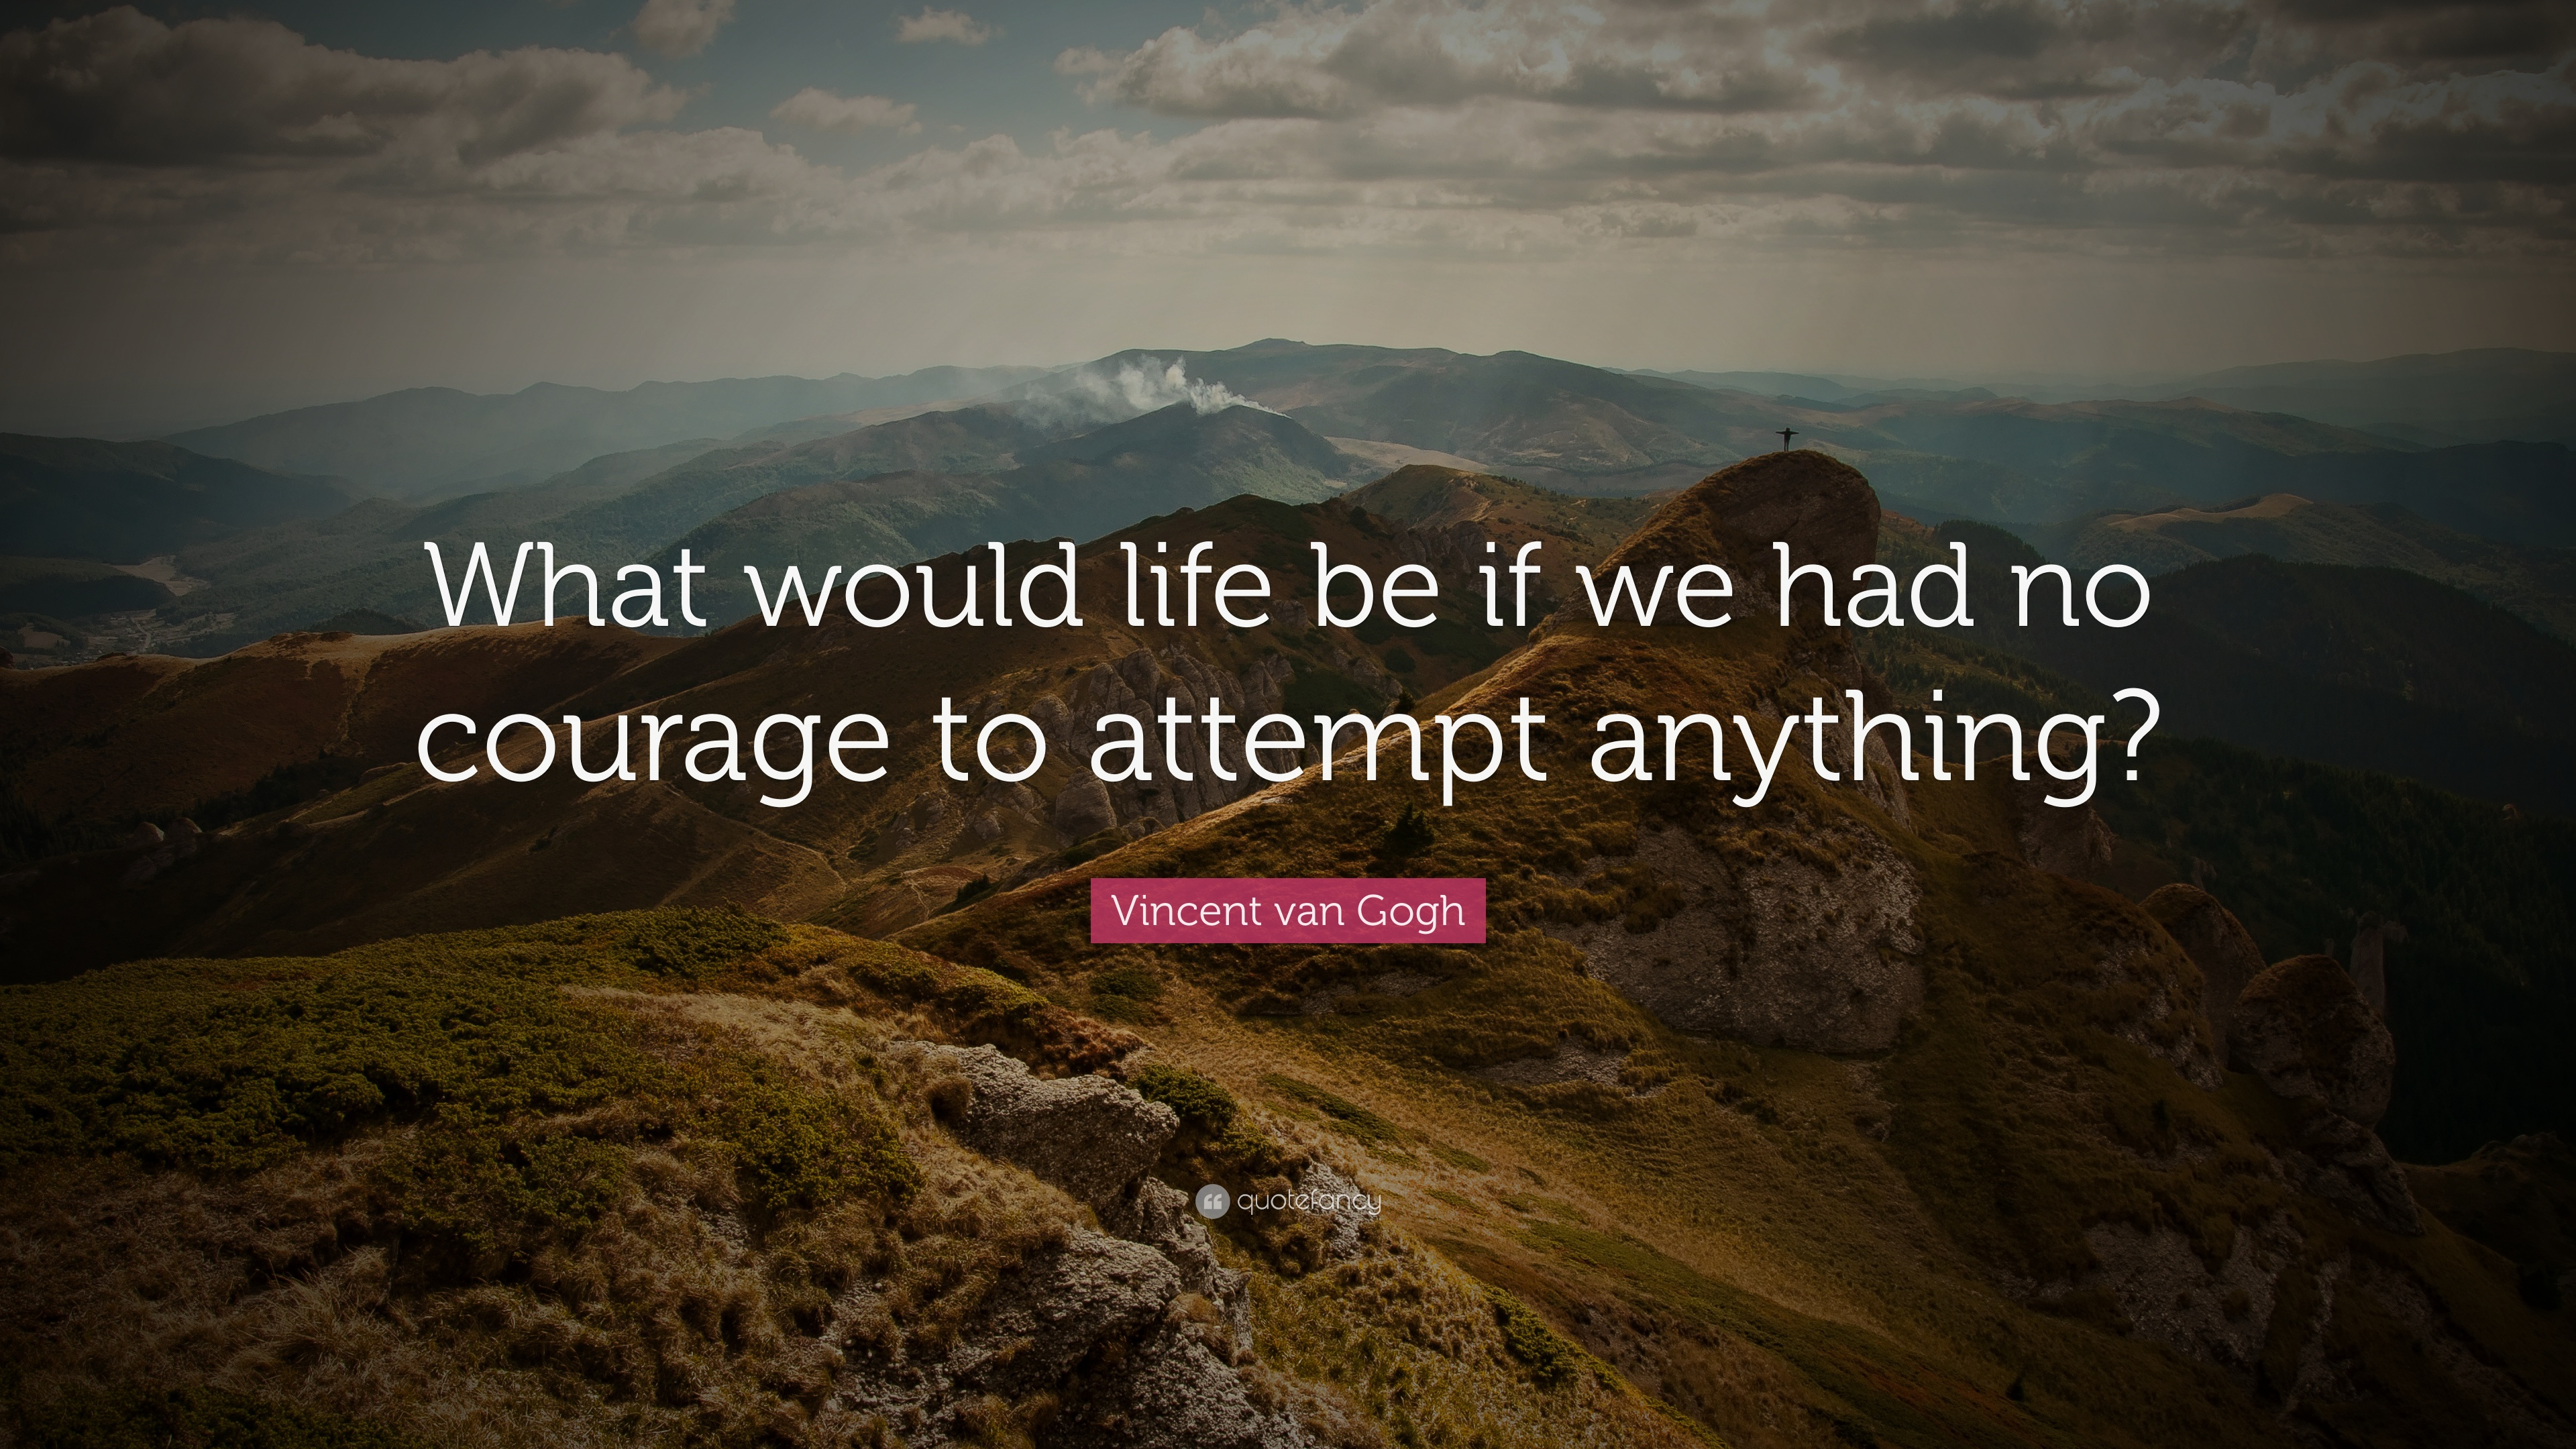 Courage quotes and Sayings #CourageQuotes - Top Quotes for Everyday